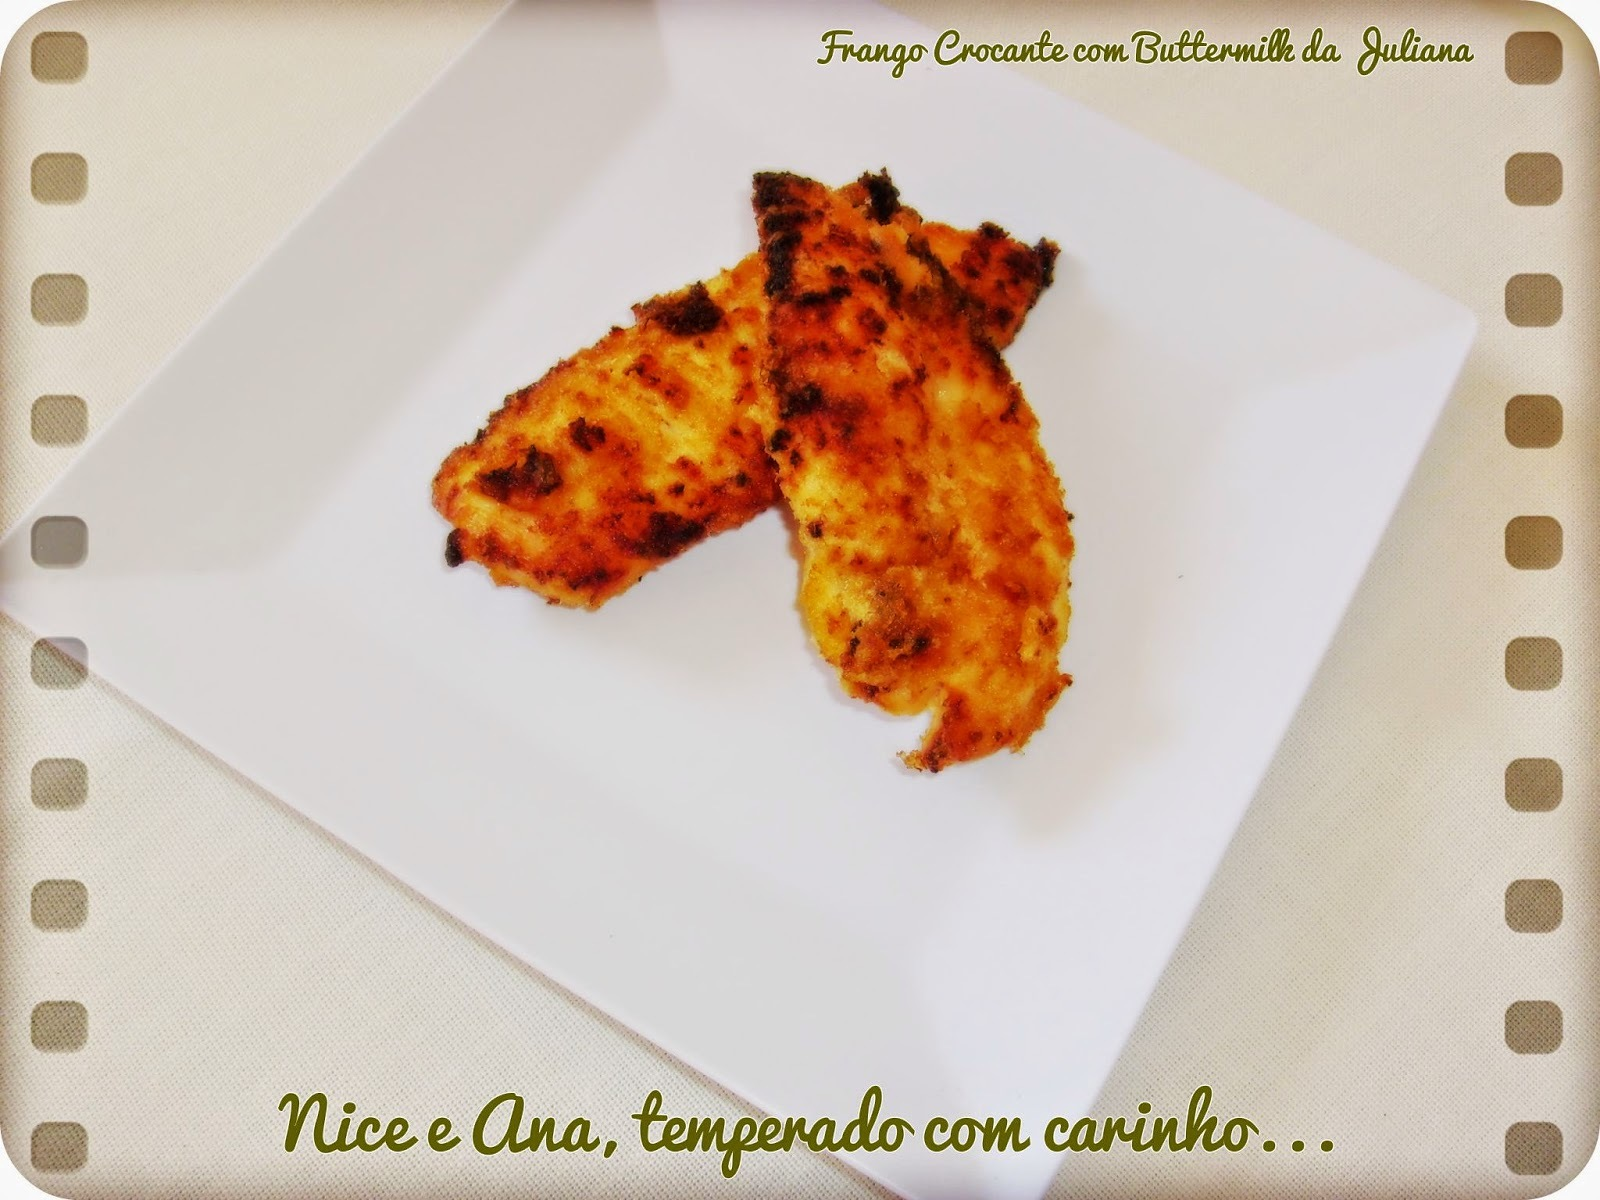 Frango Crocante com Buttermilk da Juliana